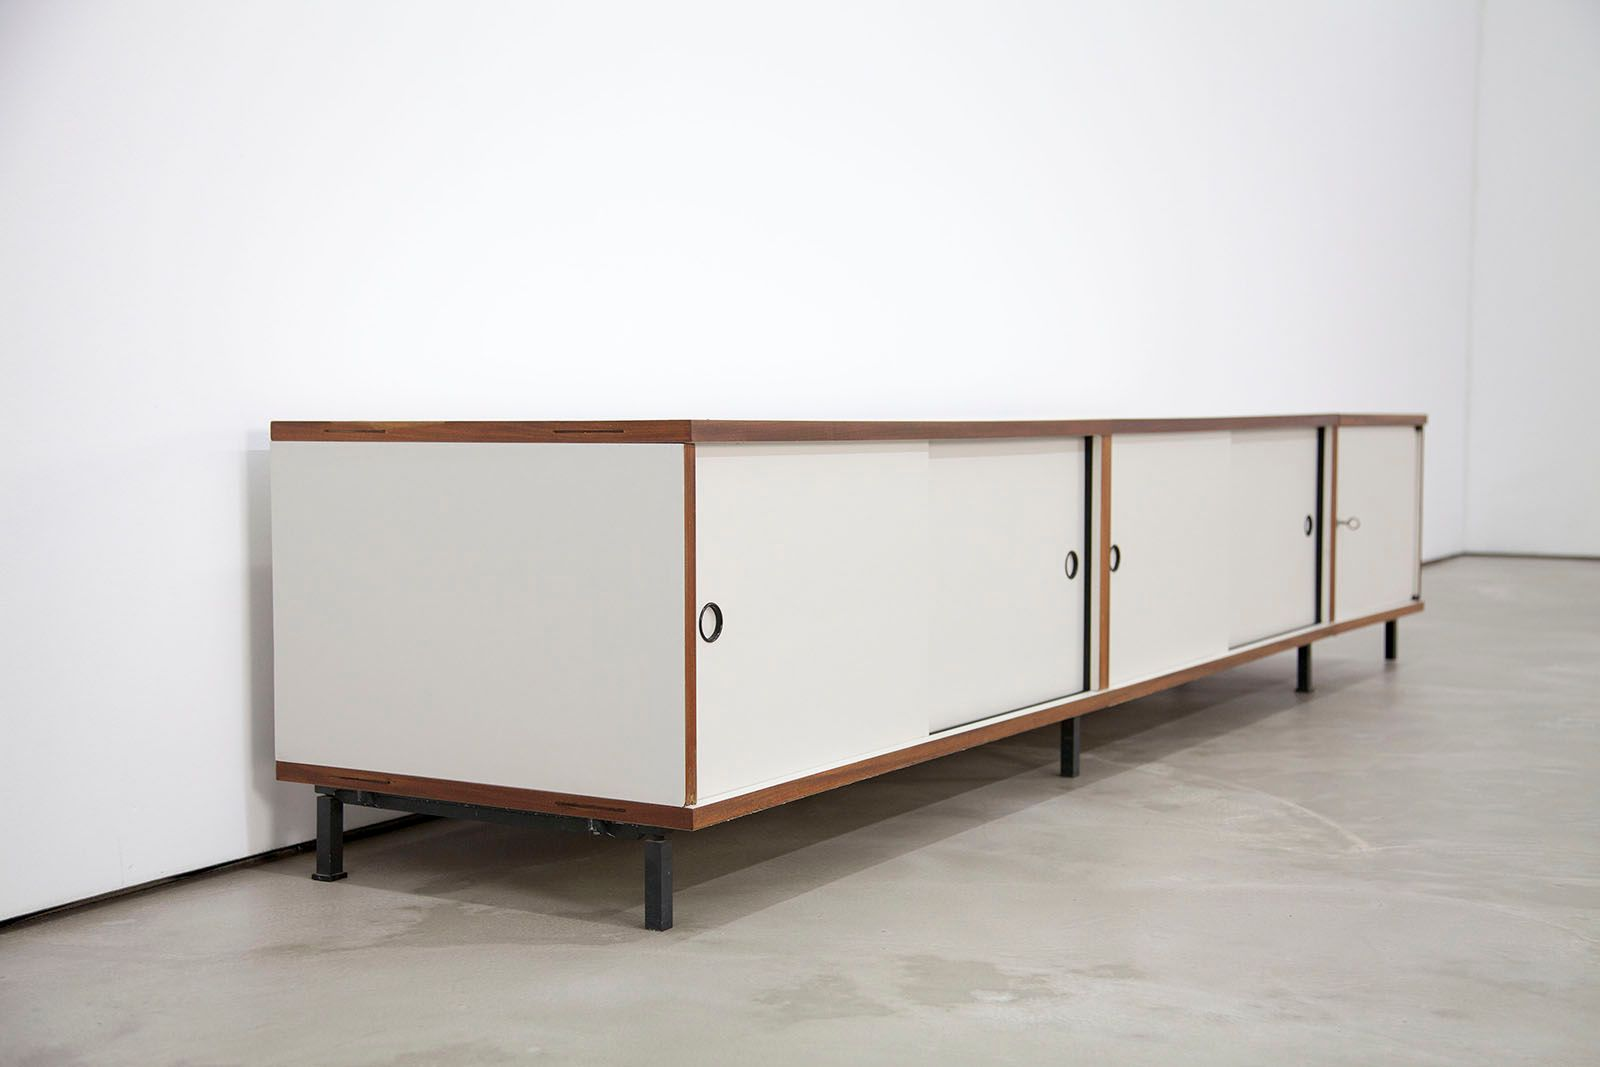 m125 langes sideboard von hans gugelot f r bofinger 1956 bei pamono kaufen. Black Bedroom Furniture Sets. Home Design Ideas